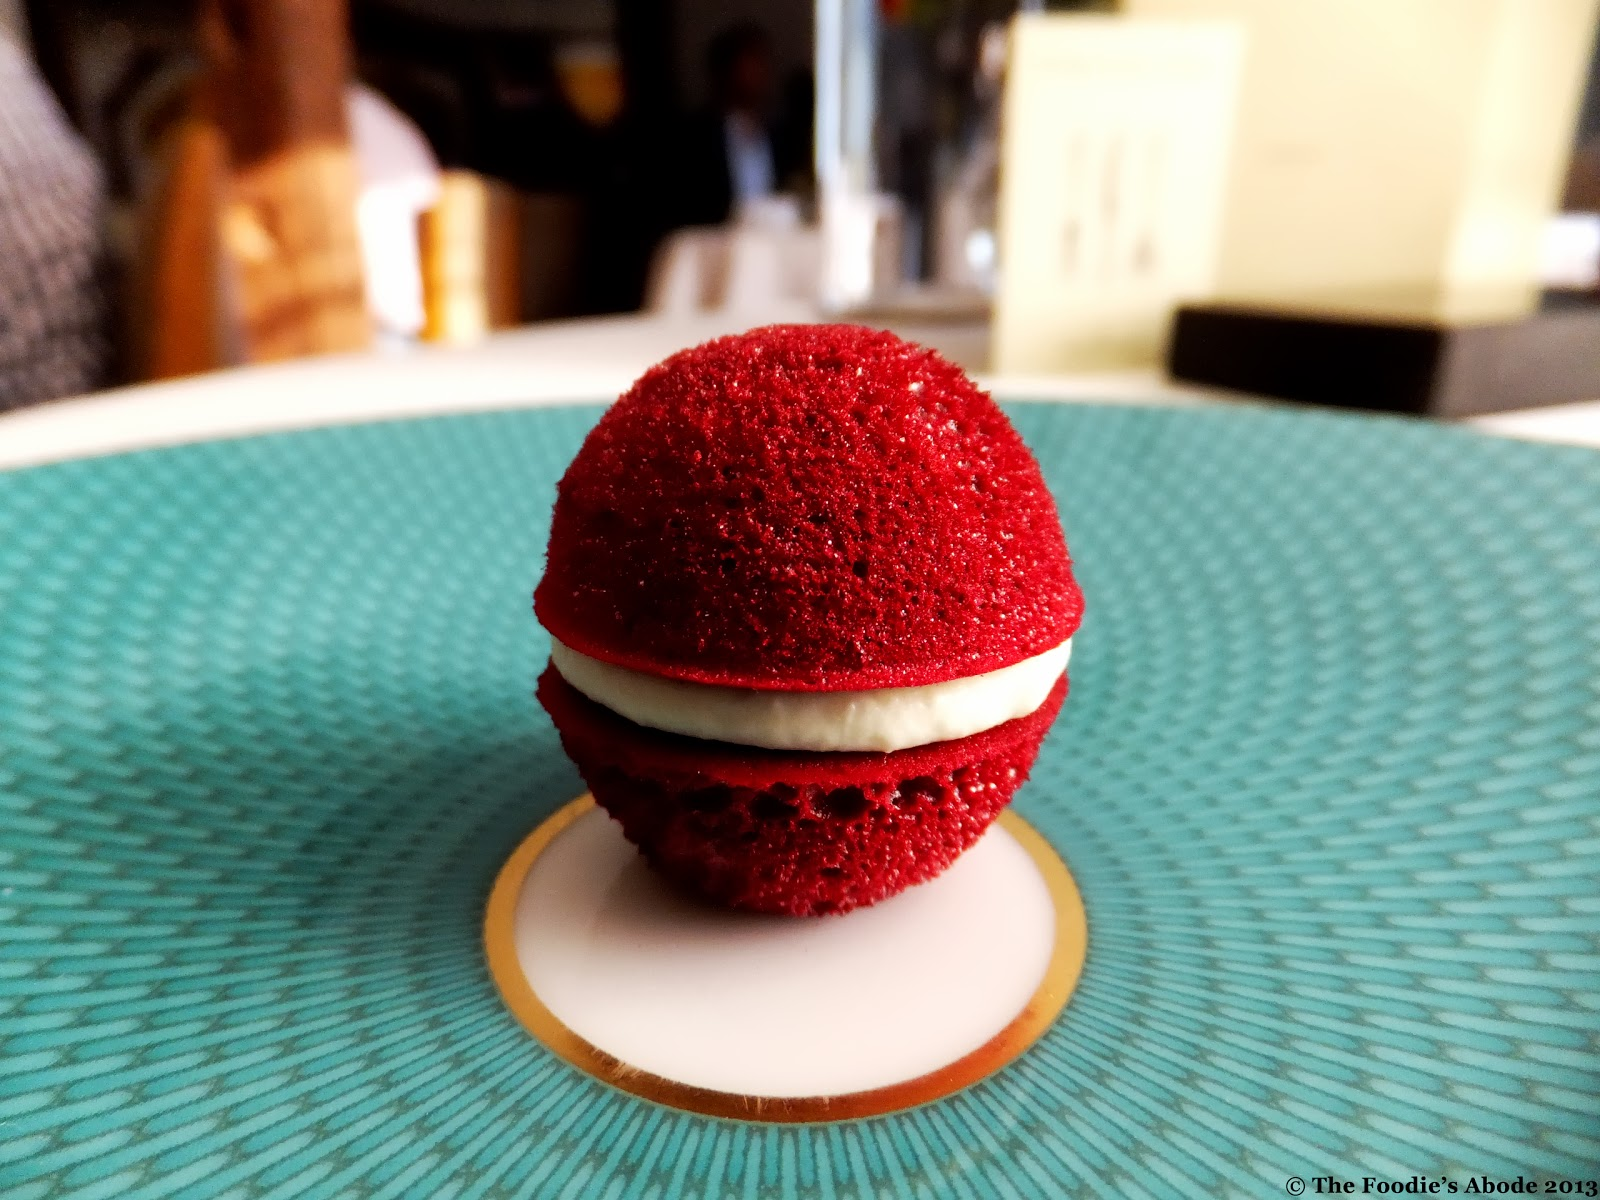 The Foodie\'s Abode: Flights of fantasy at The Fat Duck